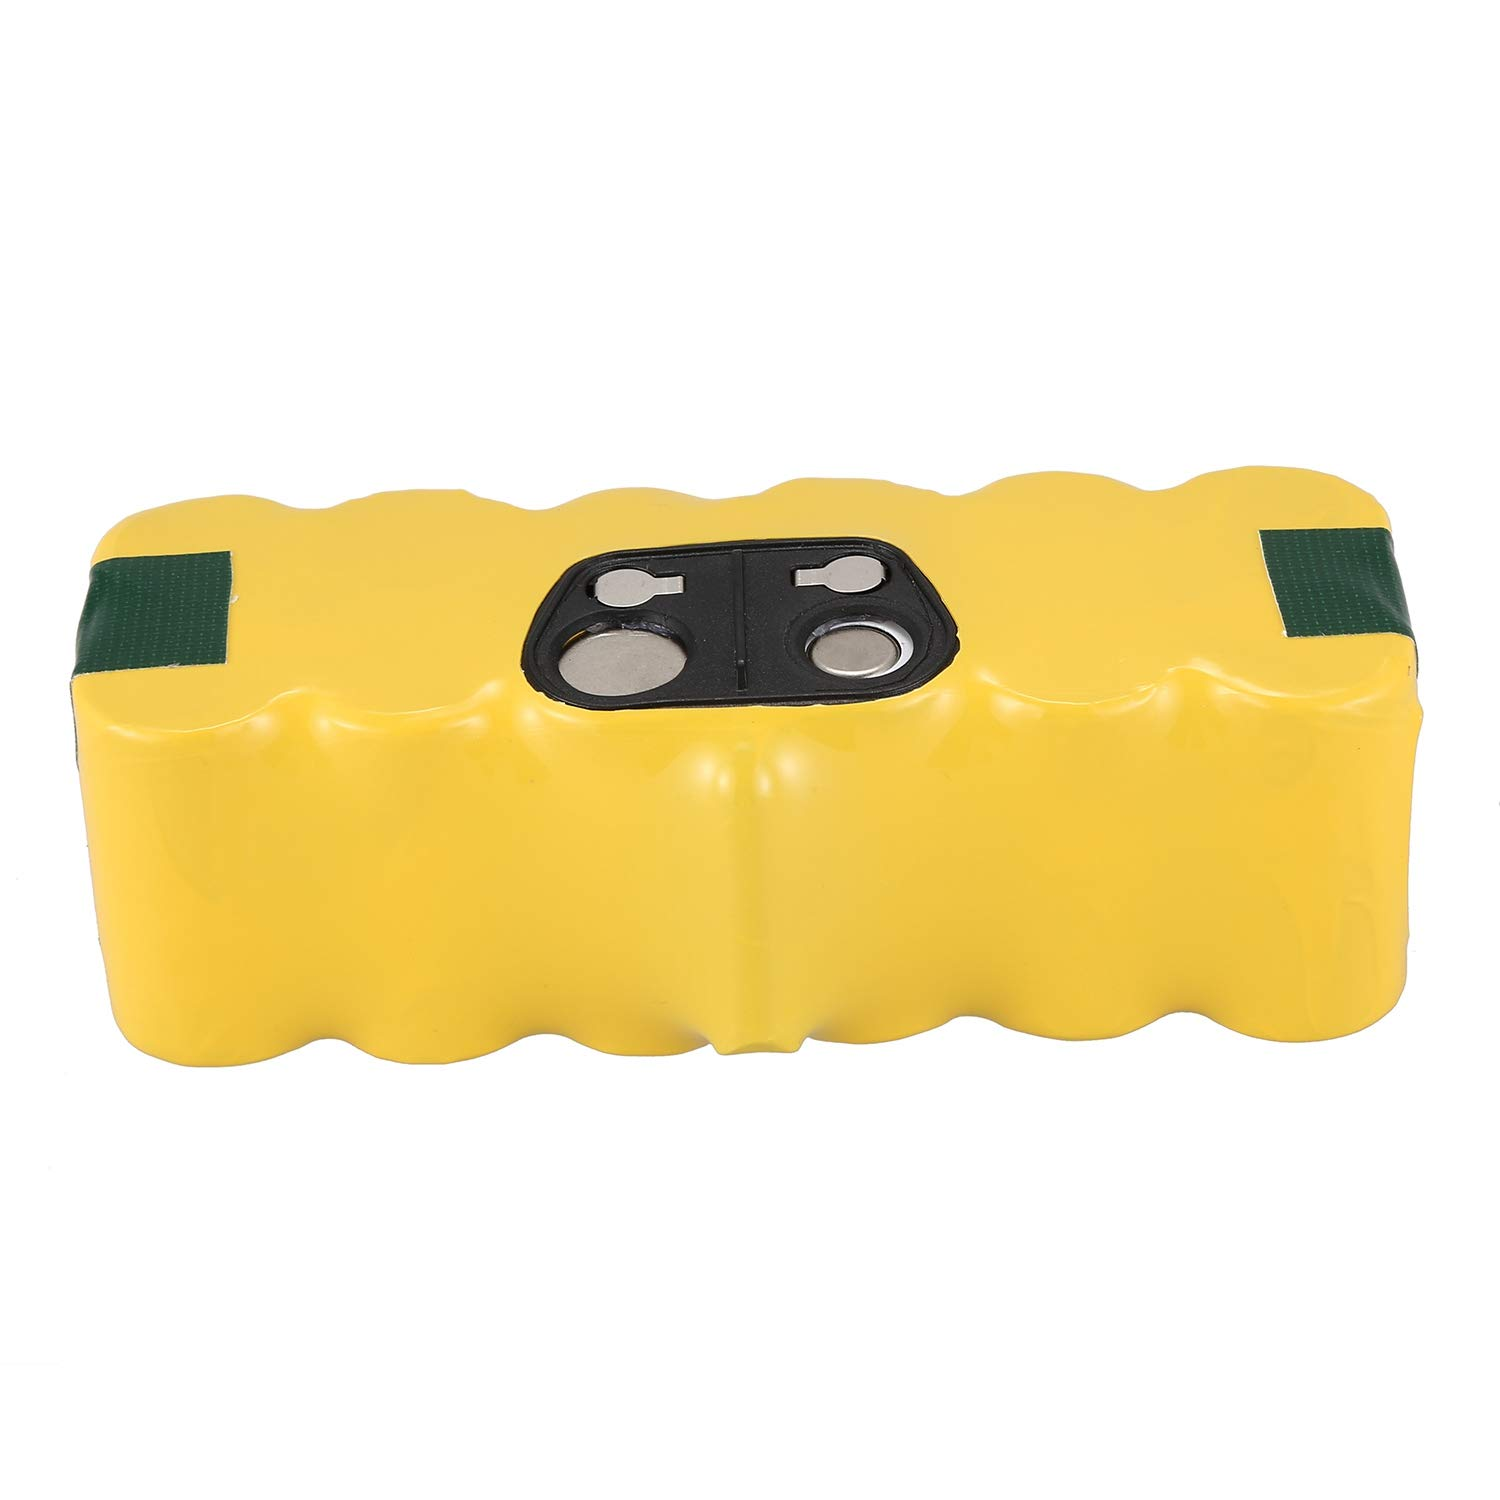 TOOGOO 14.4V 6000 Mah Ni-Mh Batterie Rechargeable pour 500 510 530 531 535 540 545 550 560 562 570 580 581 600 780